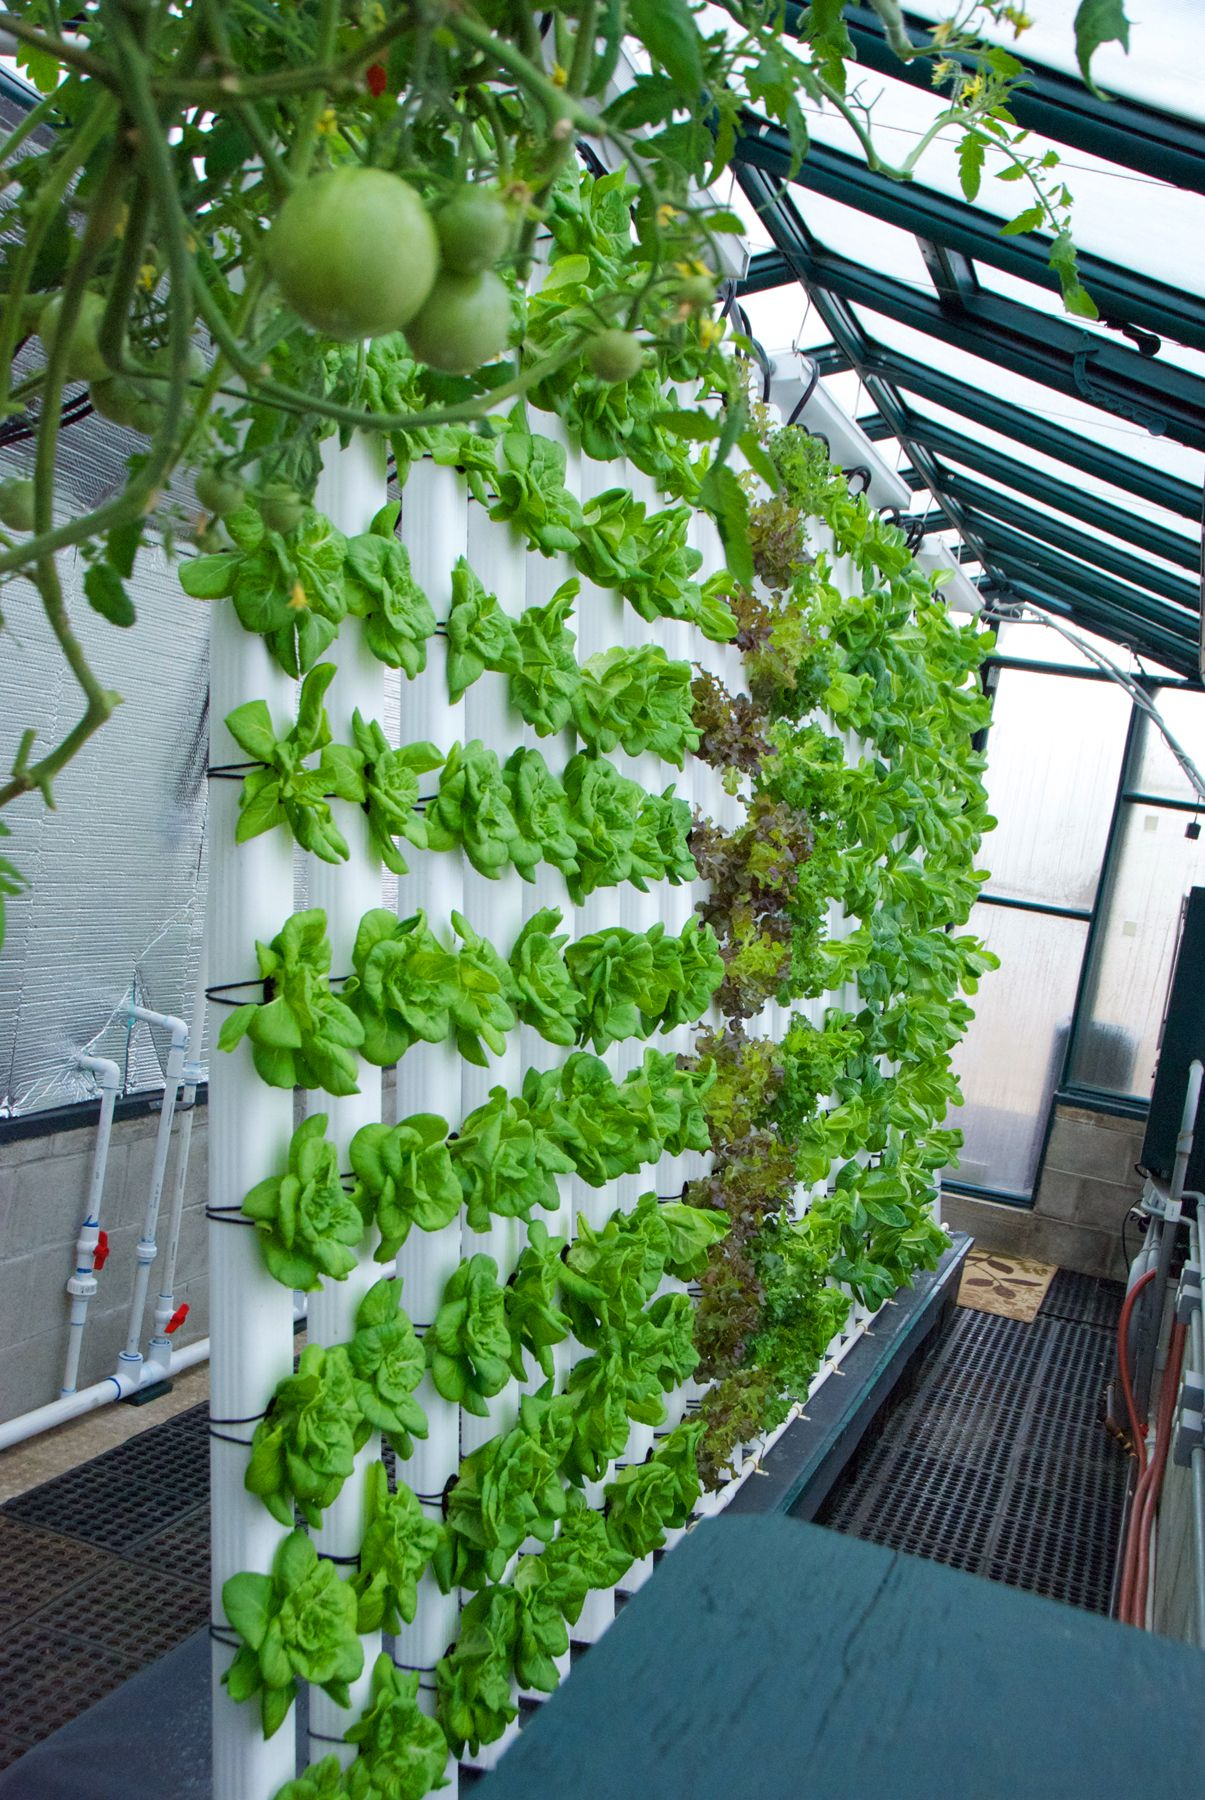 Our 80º Vertical Aquaponics System is all about saving